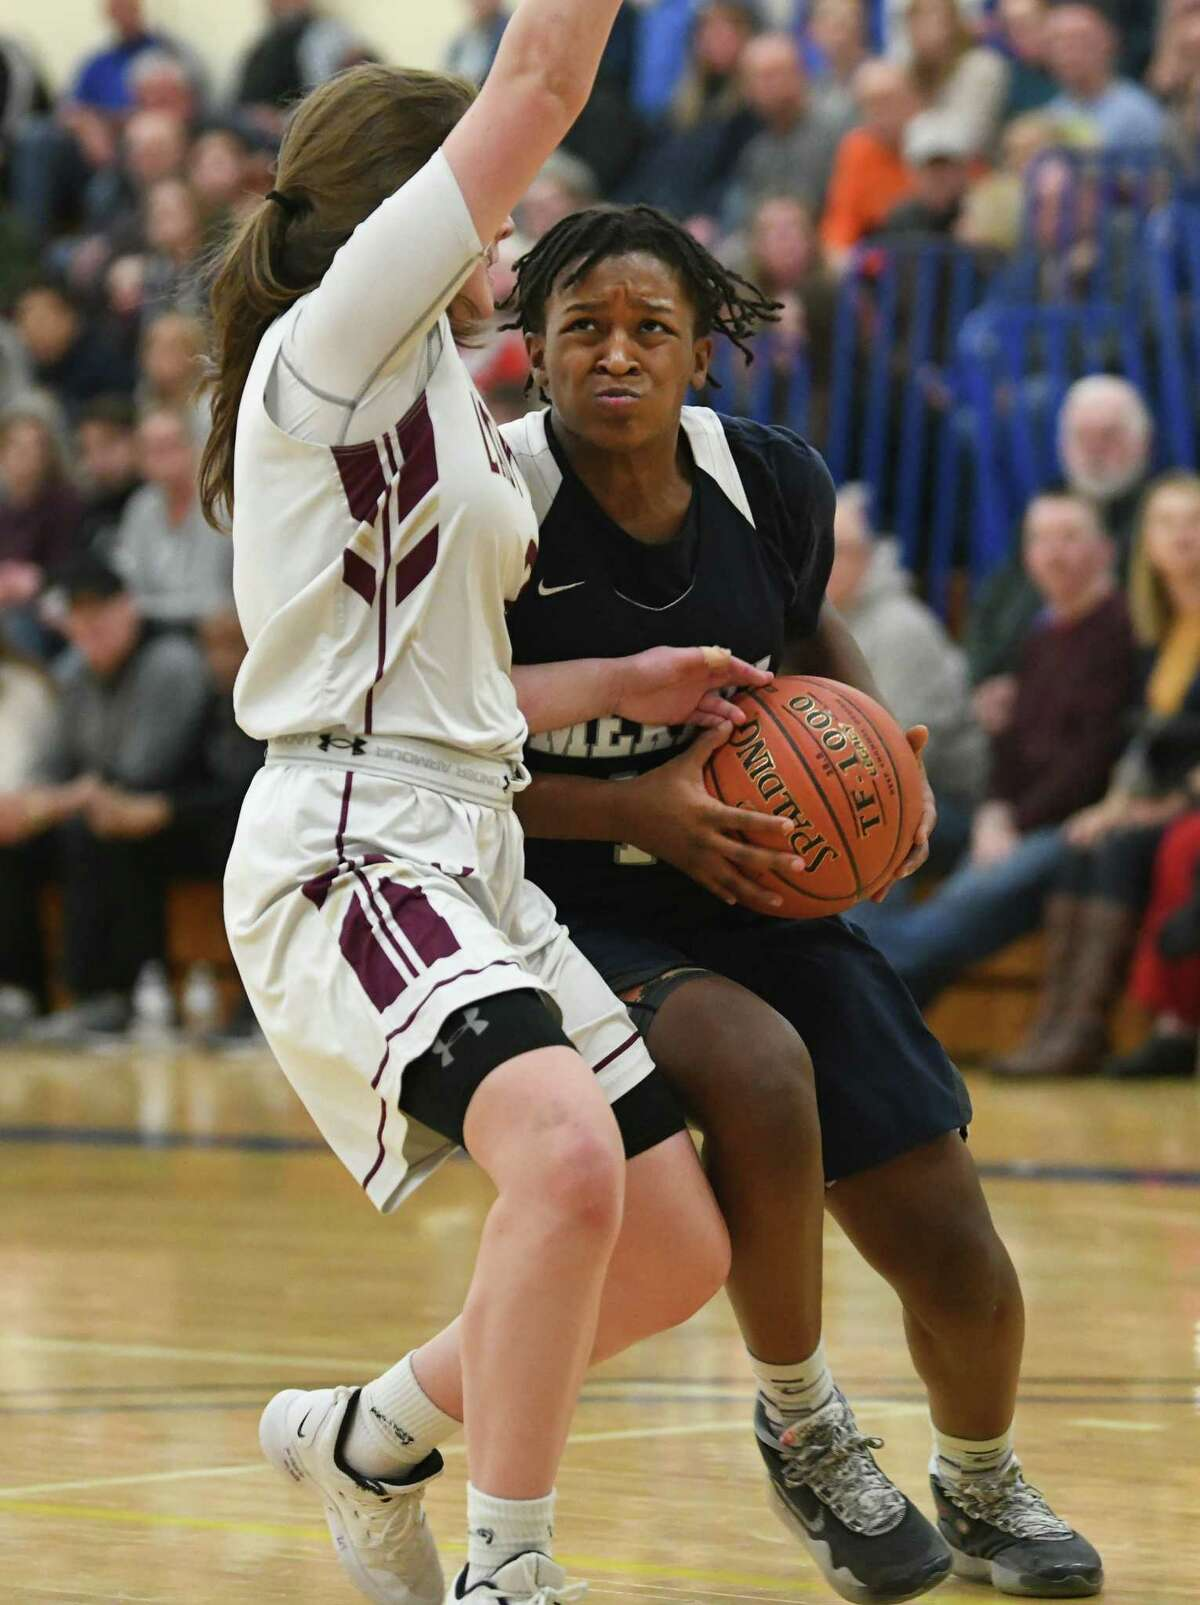 Mekeel Christian Academy's Mikyla Mitchell drives to the basket against Fonda's Carly Atty during a game at Fulton Montgomery Community College on Tuesday, Feb. 18, 2020 in Johnstown, N.Y. (Lori Van Buren/Times Union)